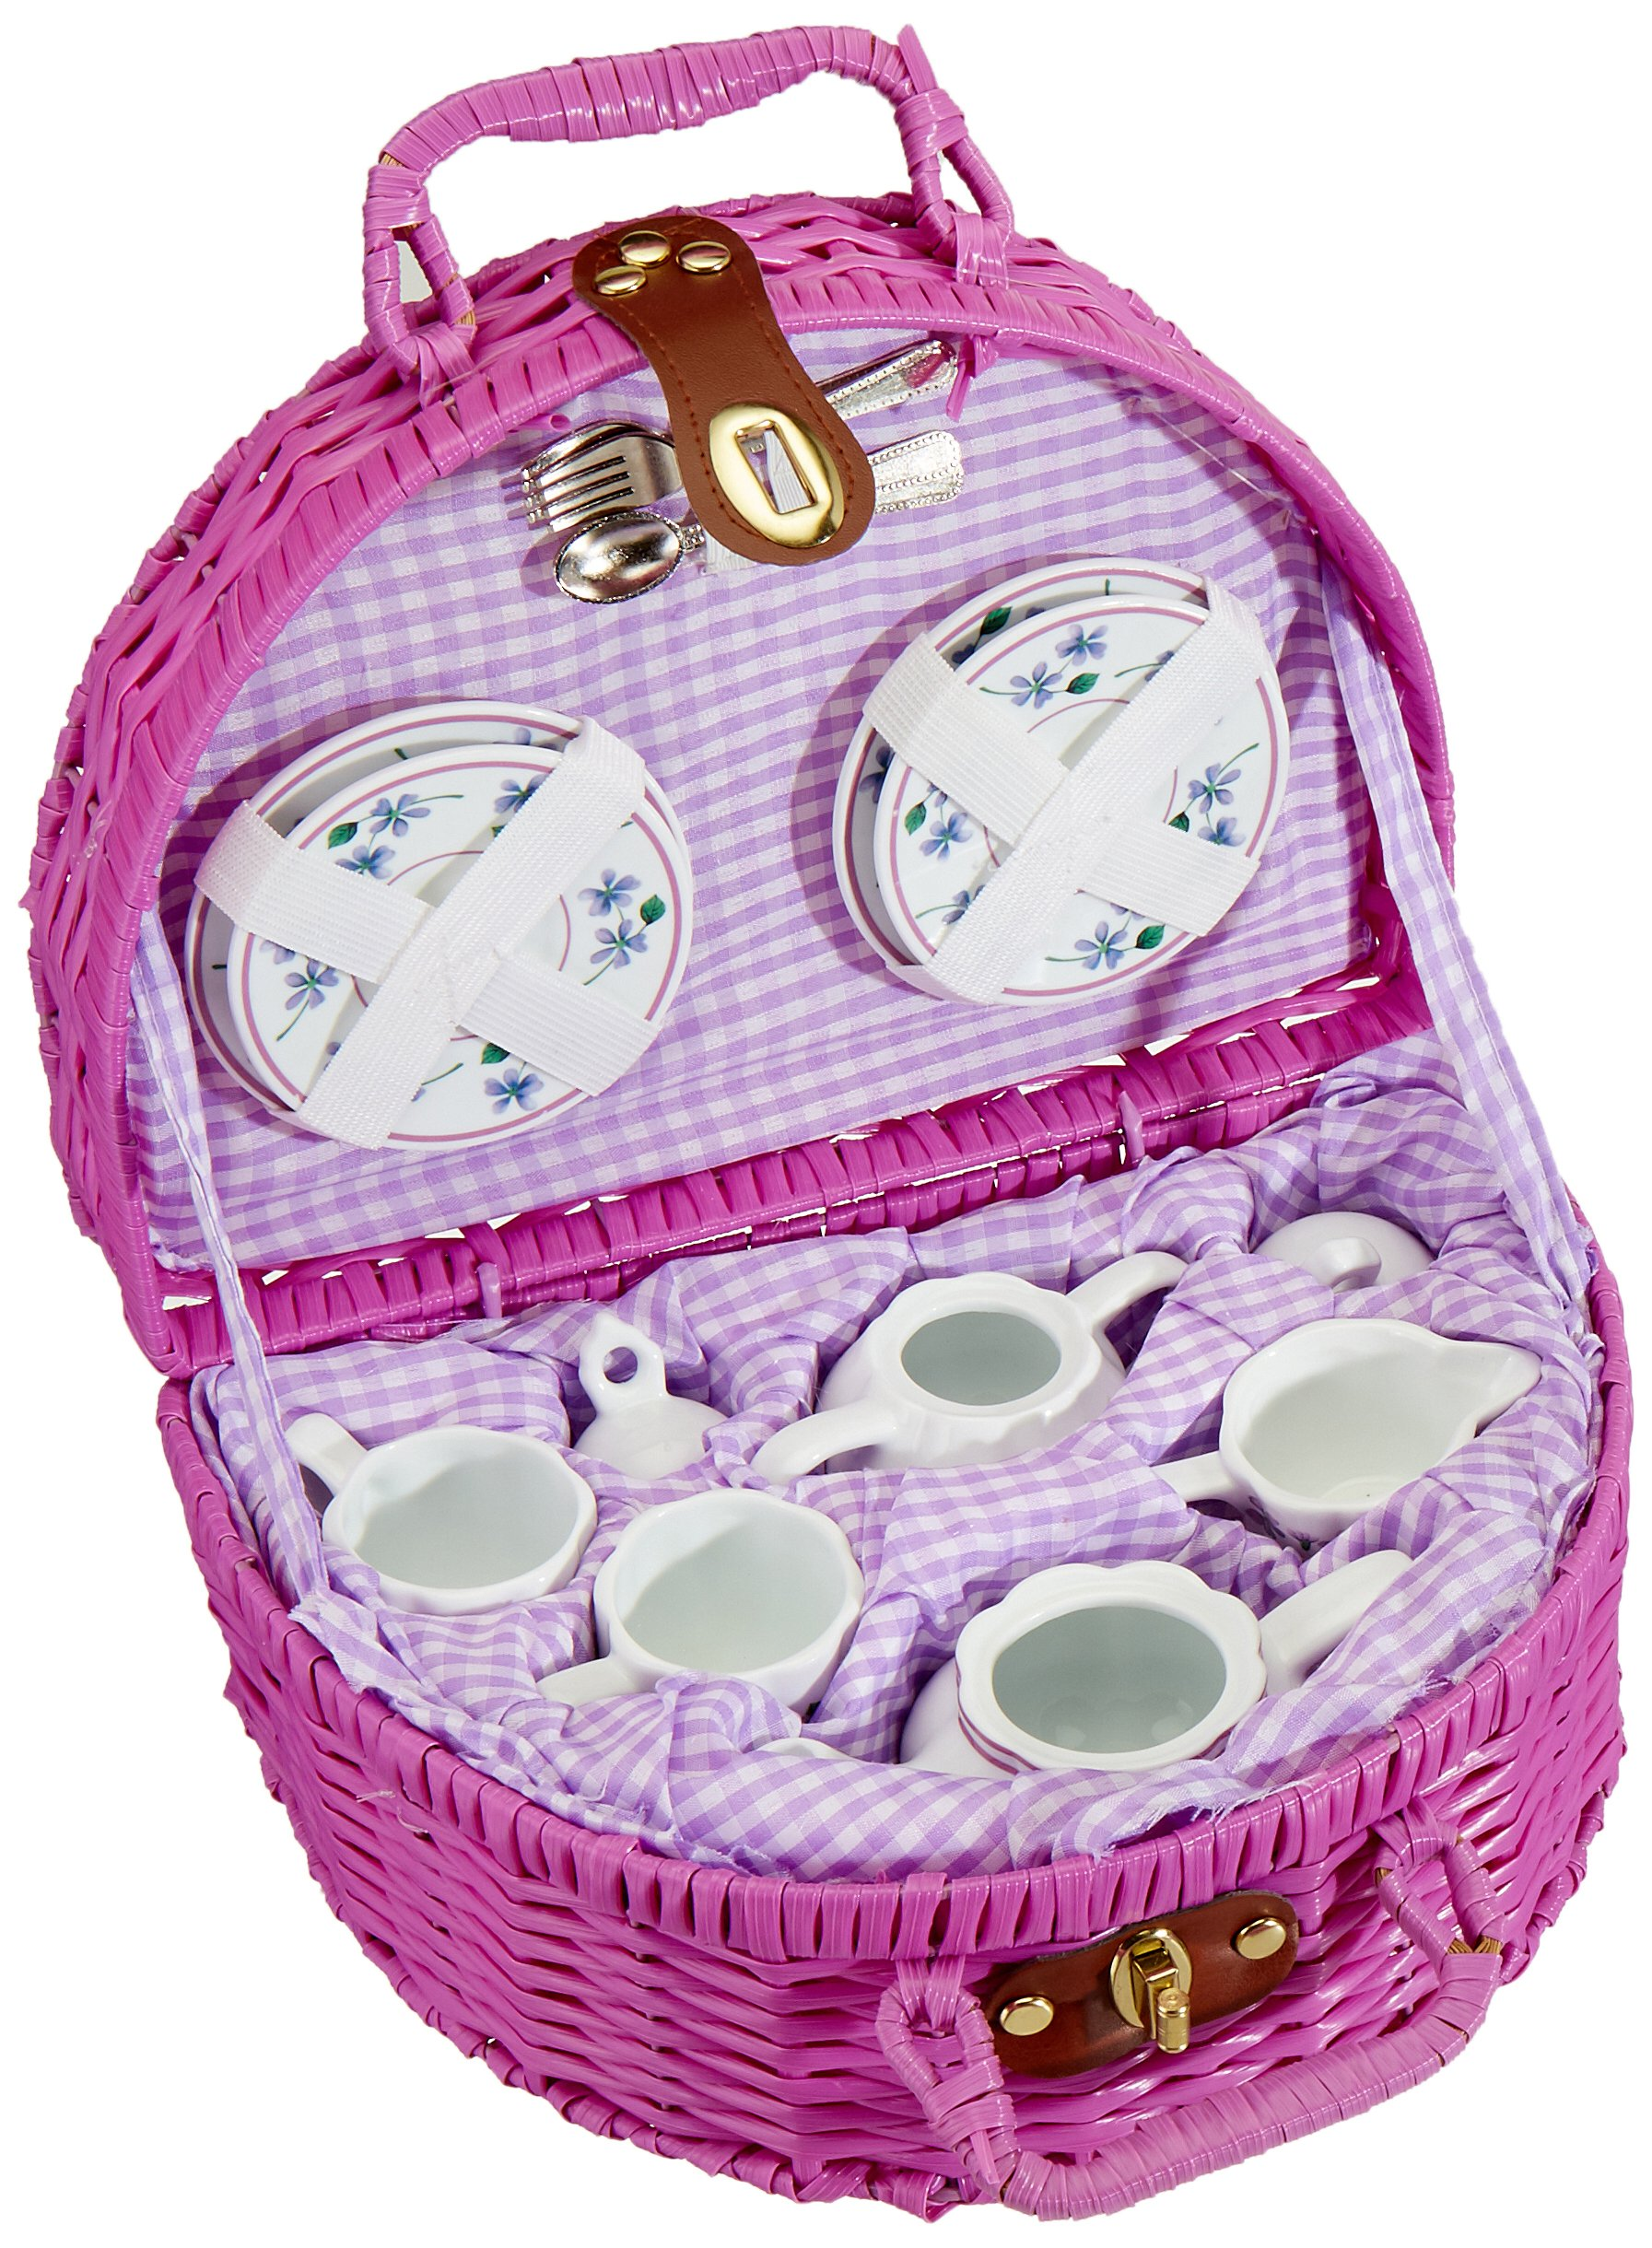 Delton Products Dollies Tea Set in Basket, Purple/Violet